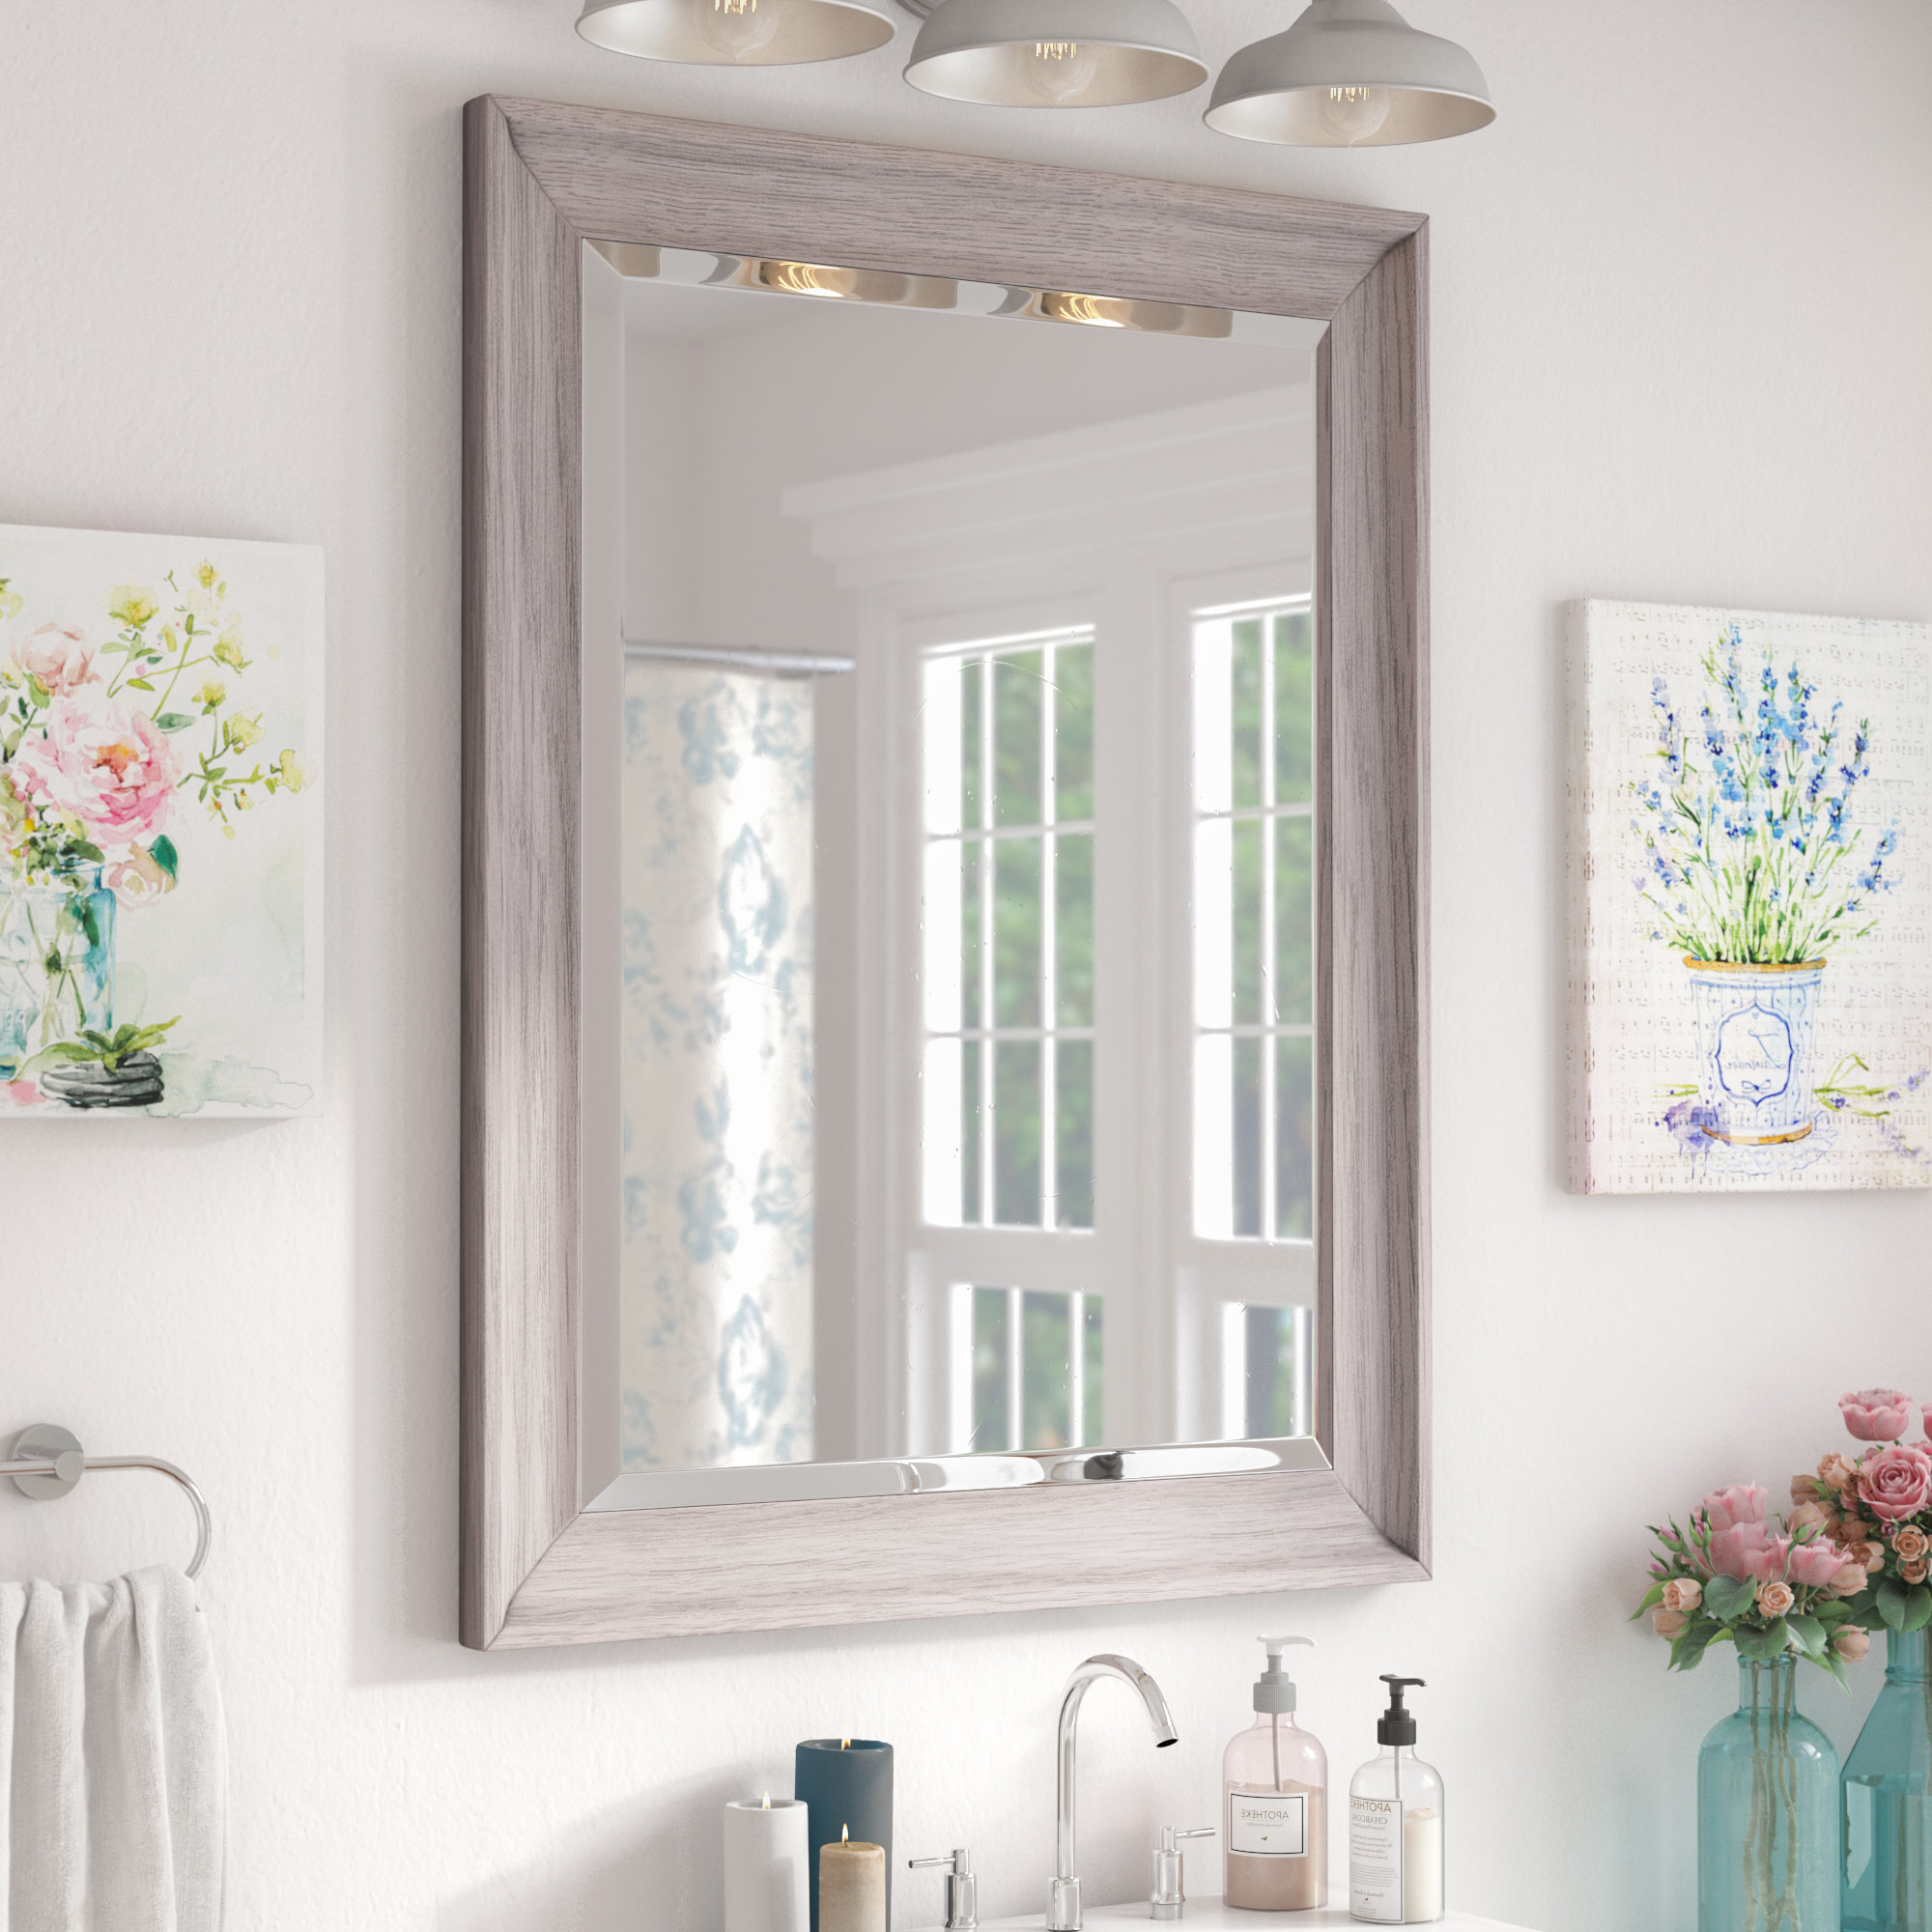 Bartouille Transitional Driftwood Beveled Bathroom/vanity Wall Mirror For Popular Vanity Wall Mirrors For Bathroom (View 7 of 20)